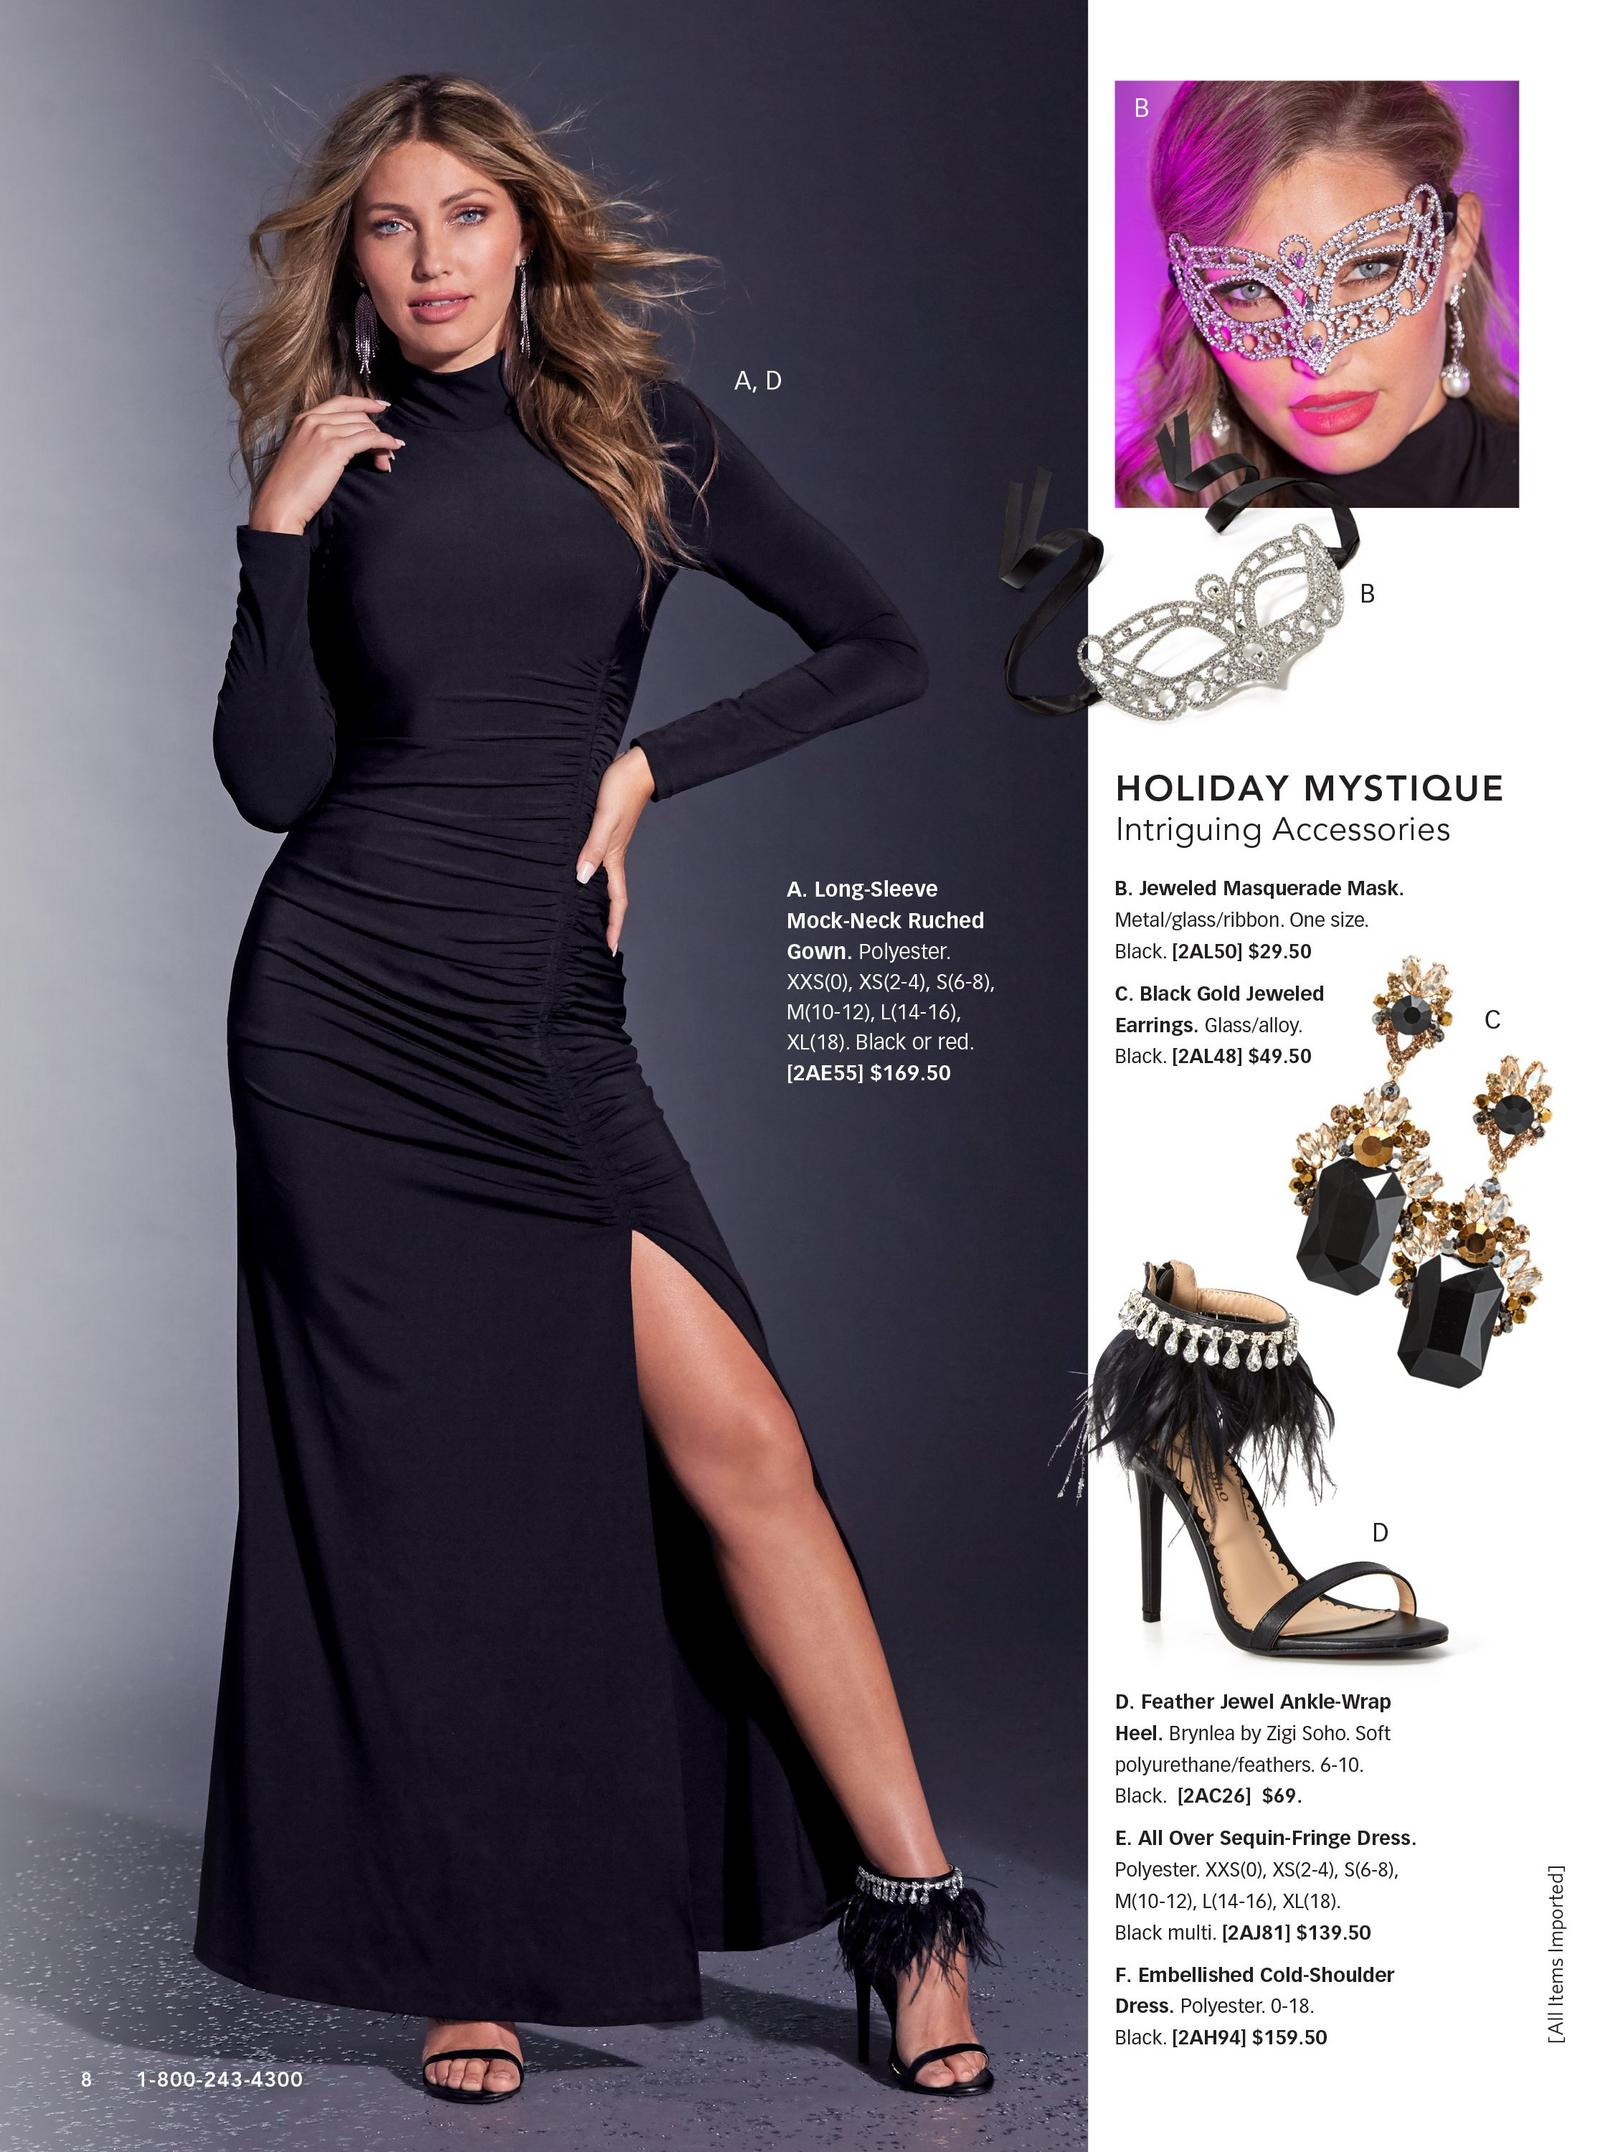 model wearing black long-sleeve mock-neck ruched gown with feather jewel ankle-wrap heel. right side includes silos of black and gold earrings, feather ankle-wrap heel in black and a jeweled masquerade mask.